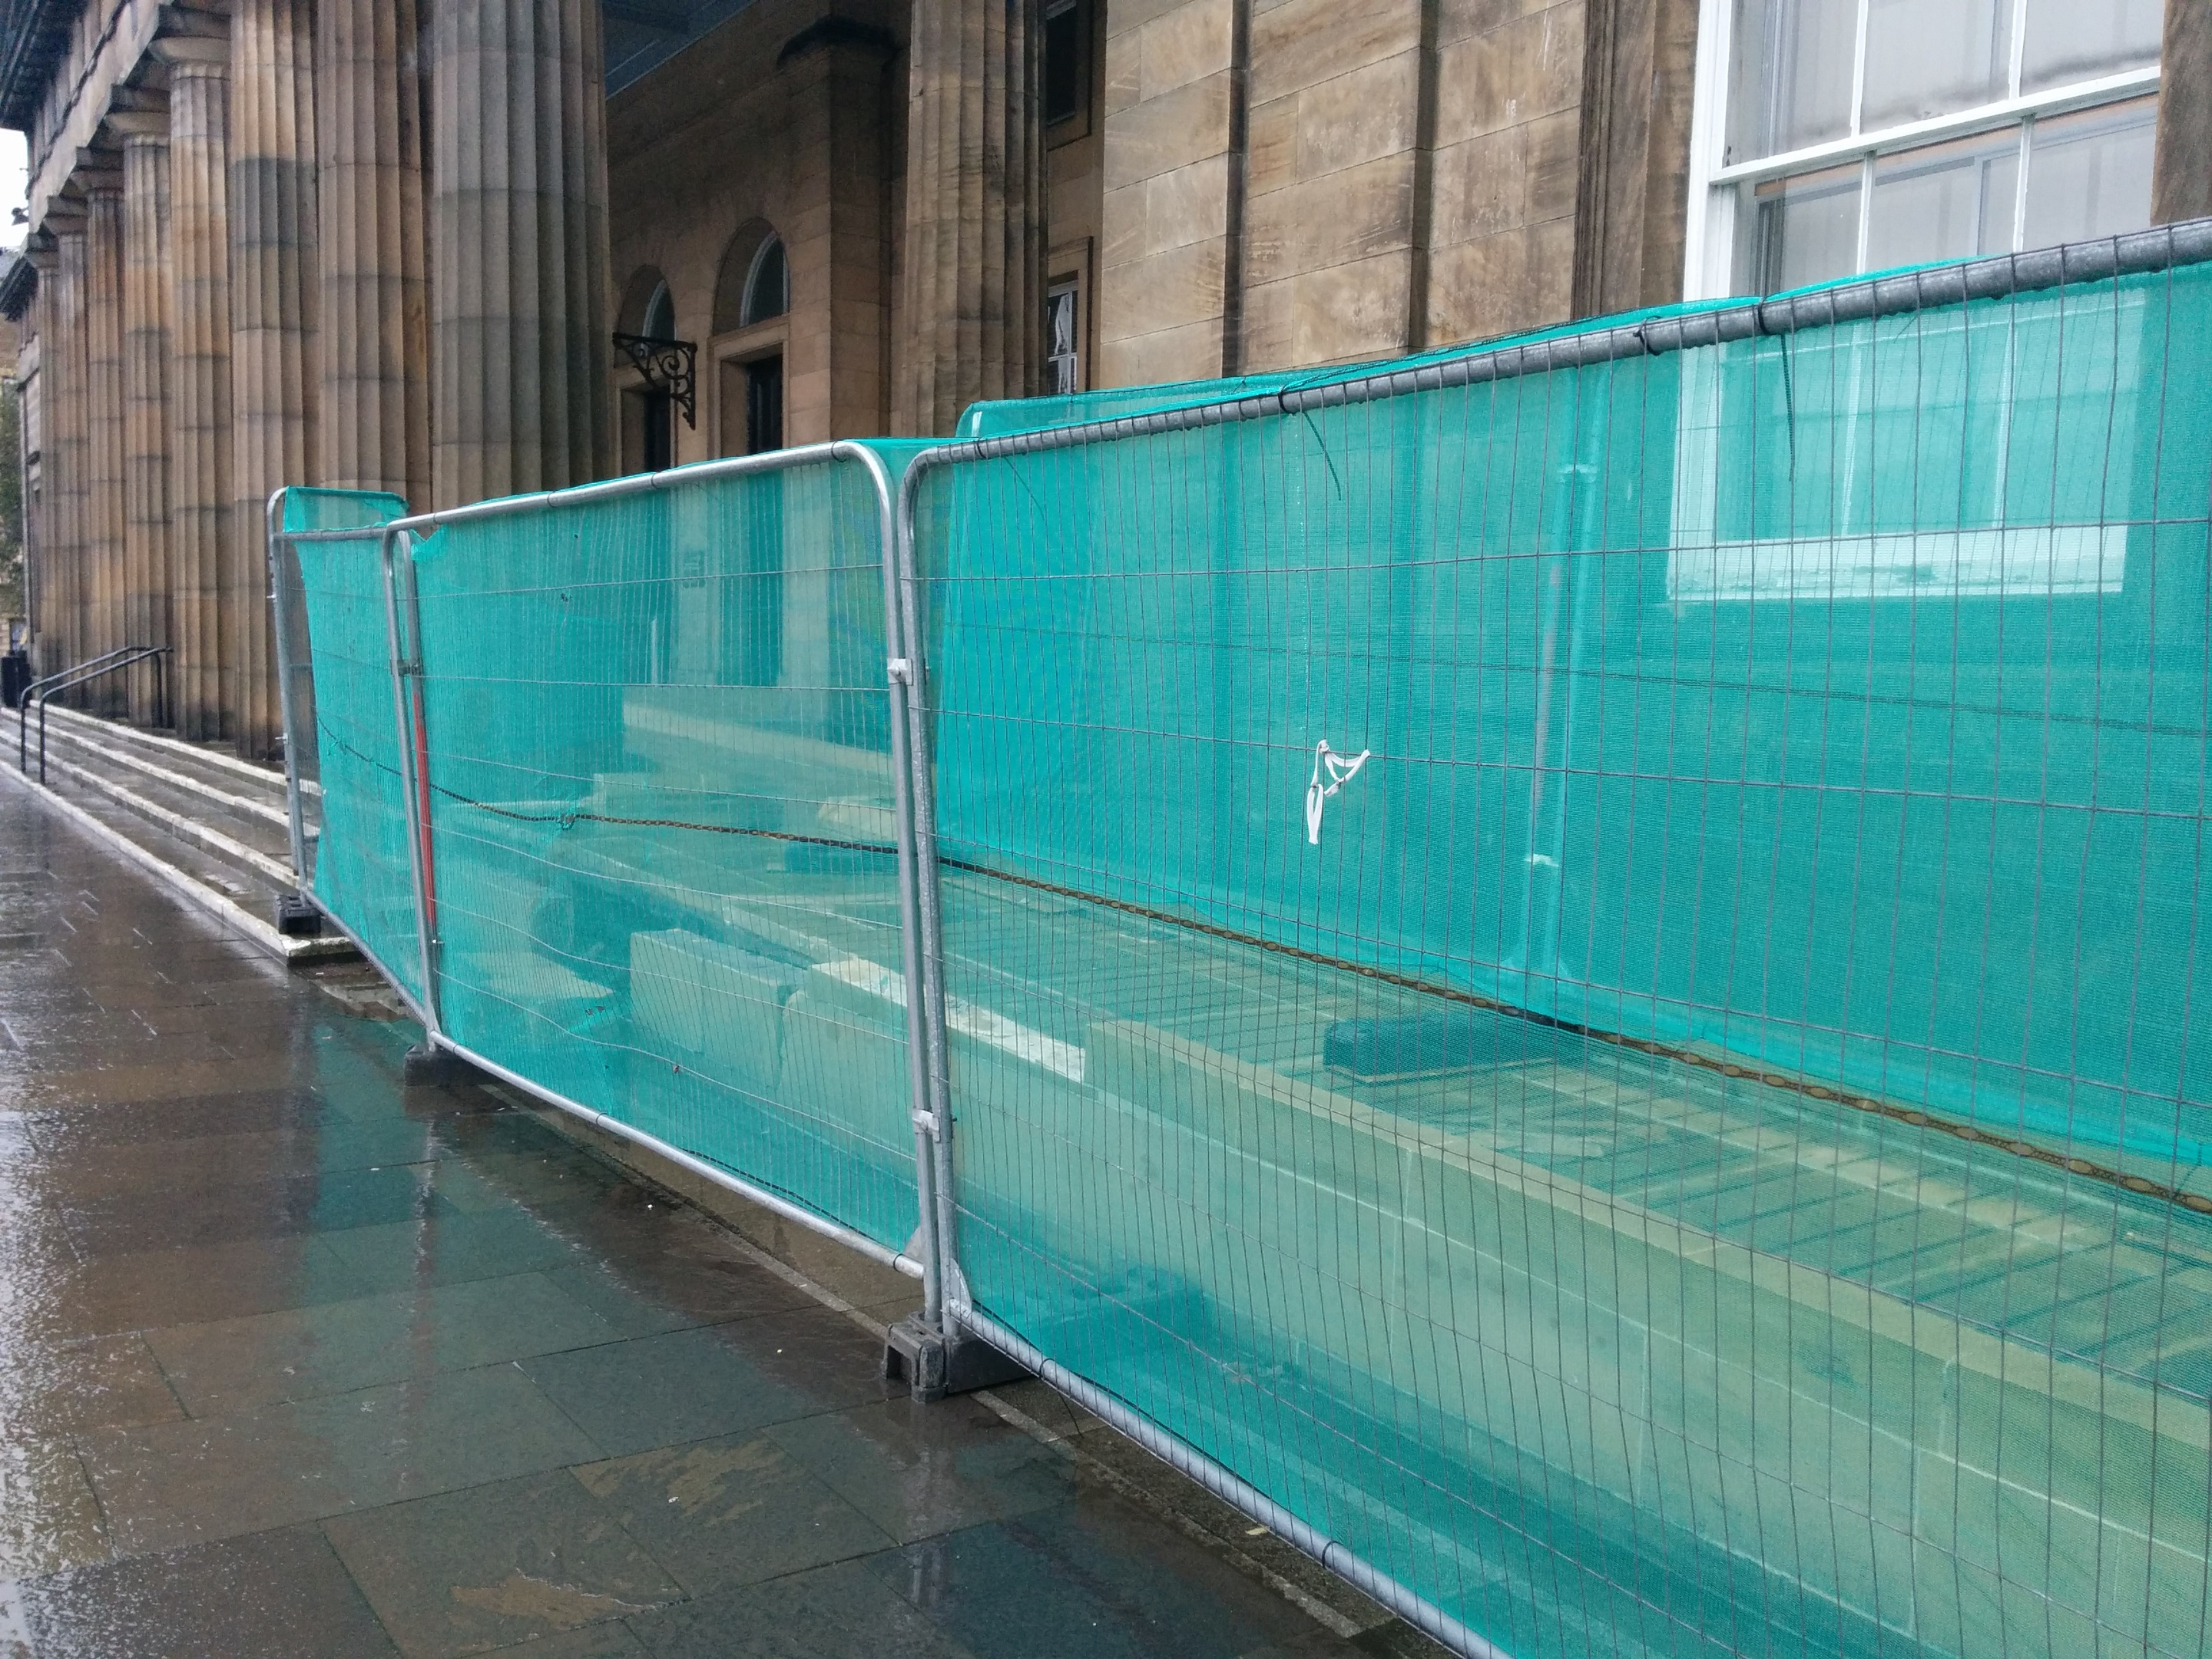 A temporary fence encloses the disabled ramp at Perth Sheriff Court.